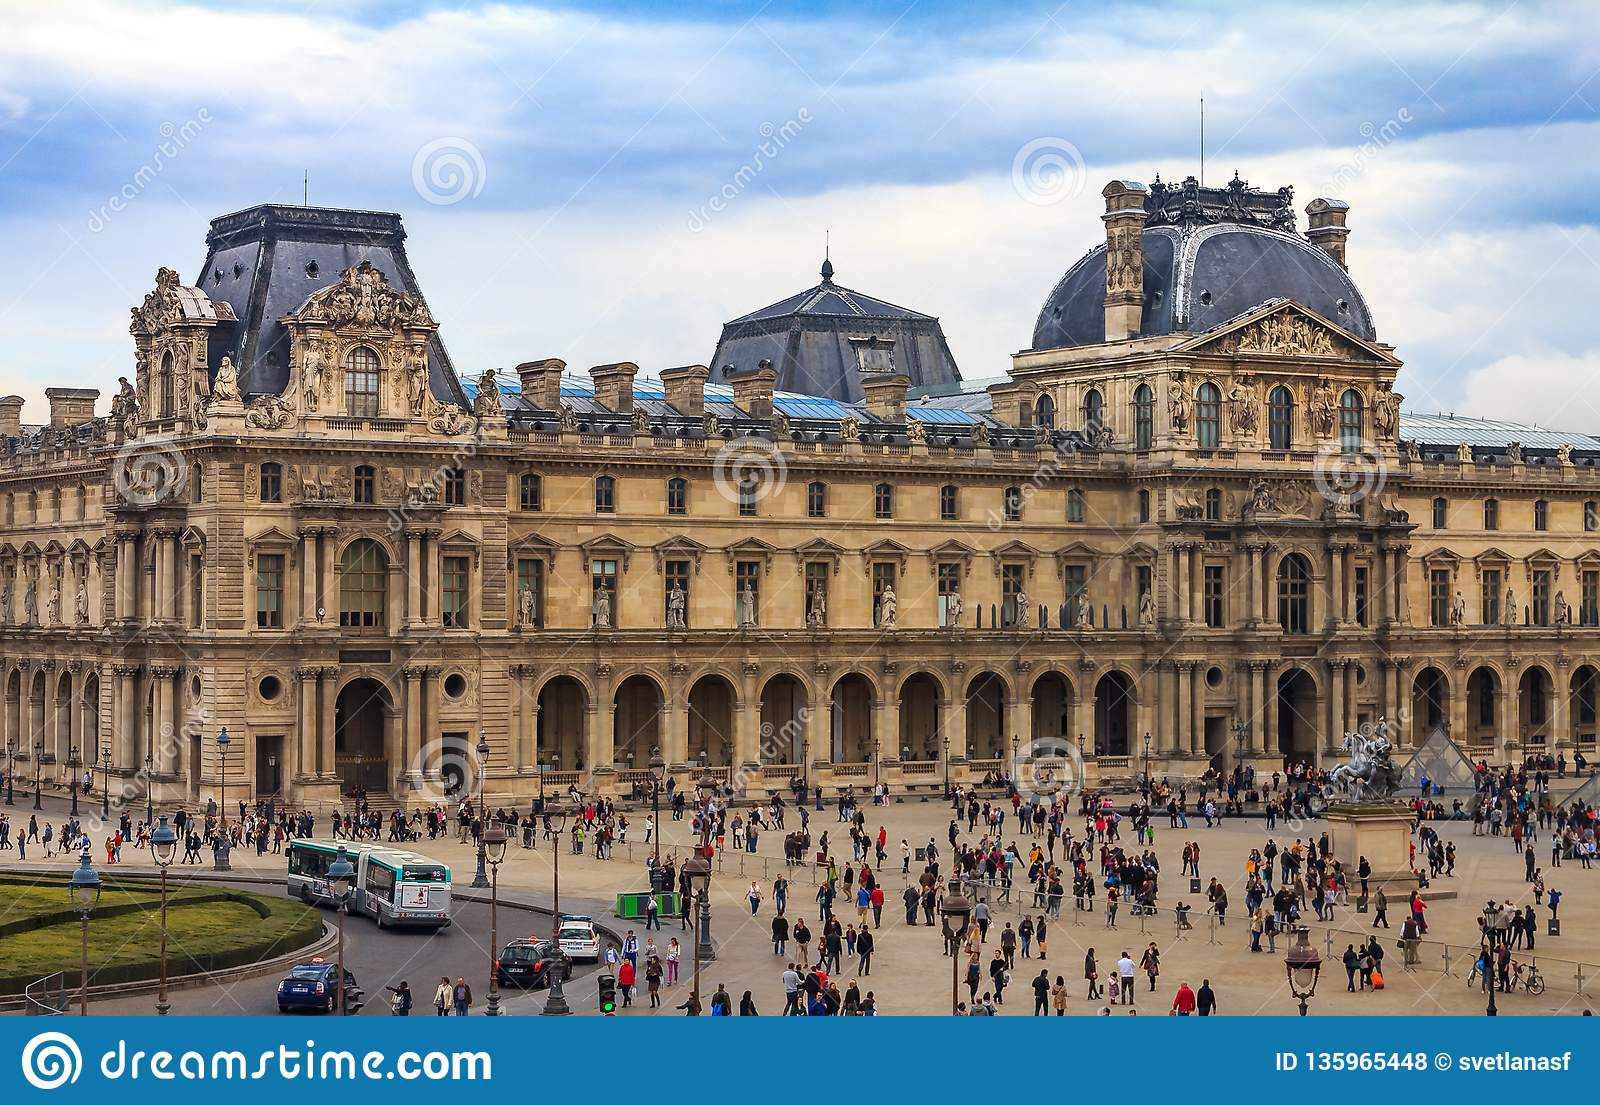 Tourists Walking In Front Of The Famous Louvre Museum One